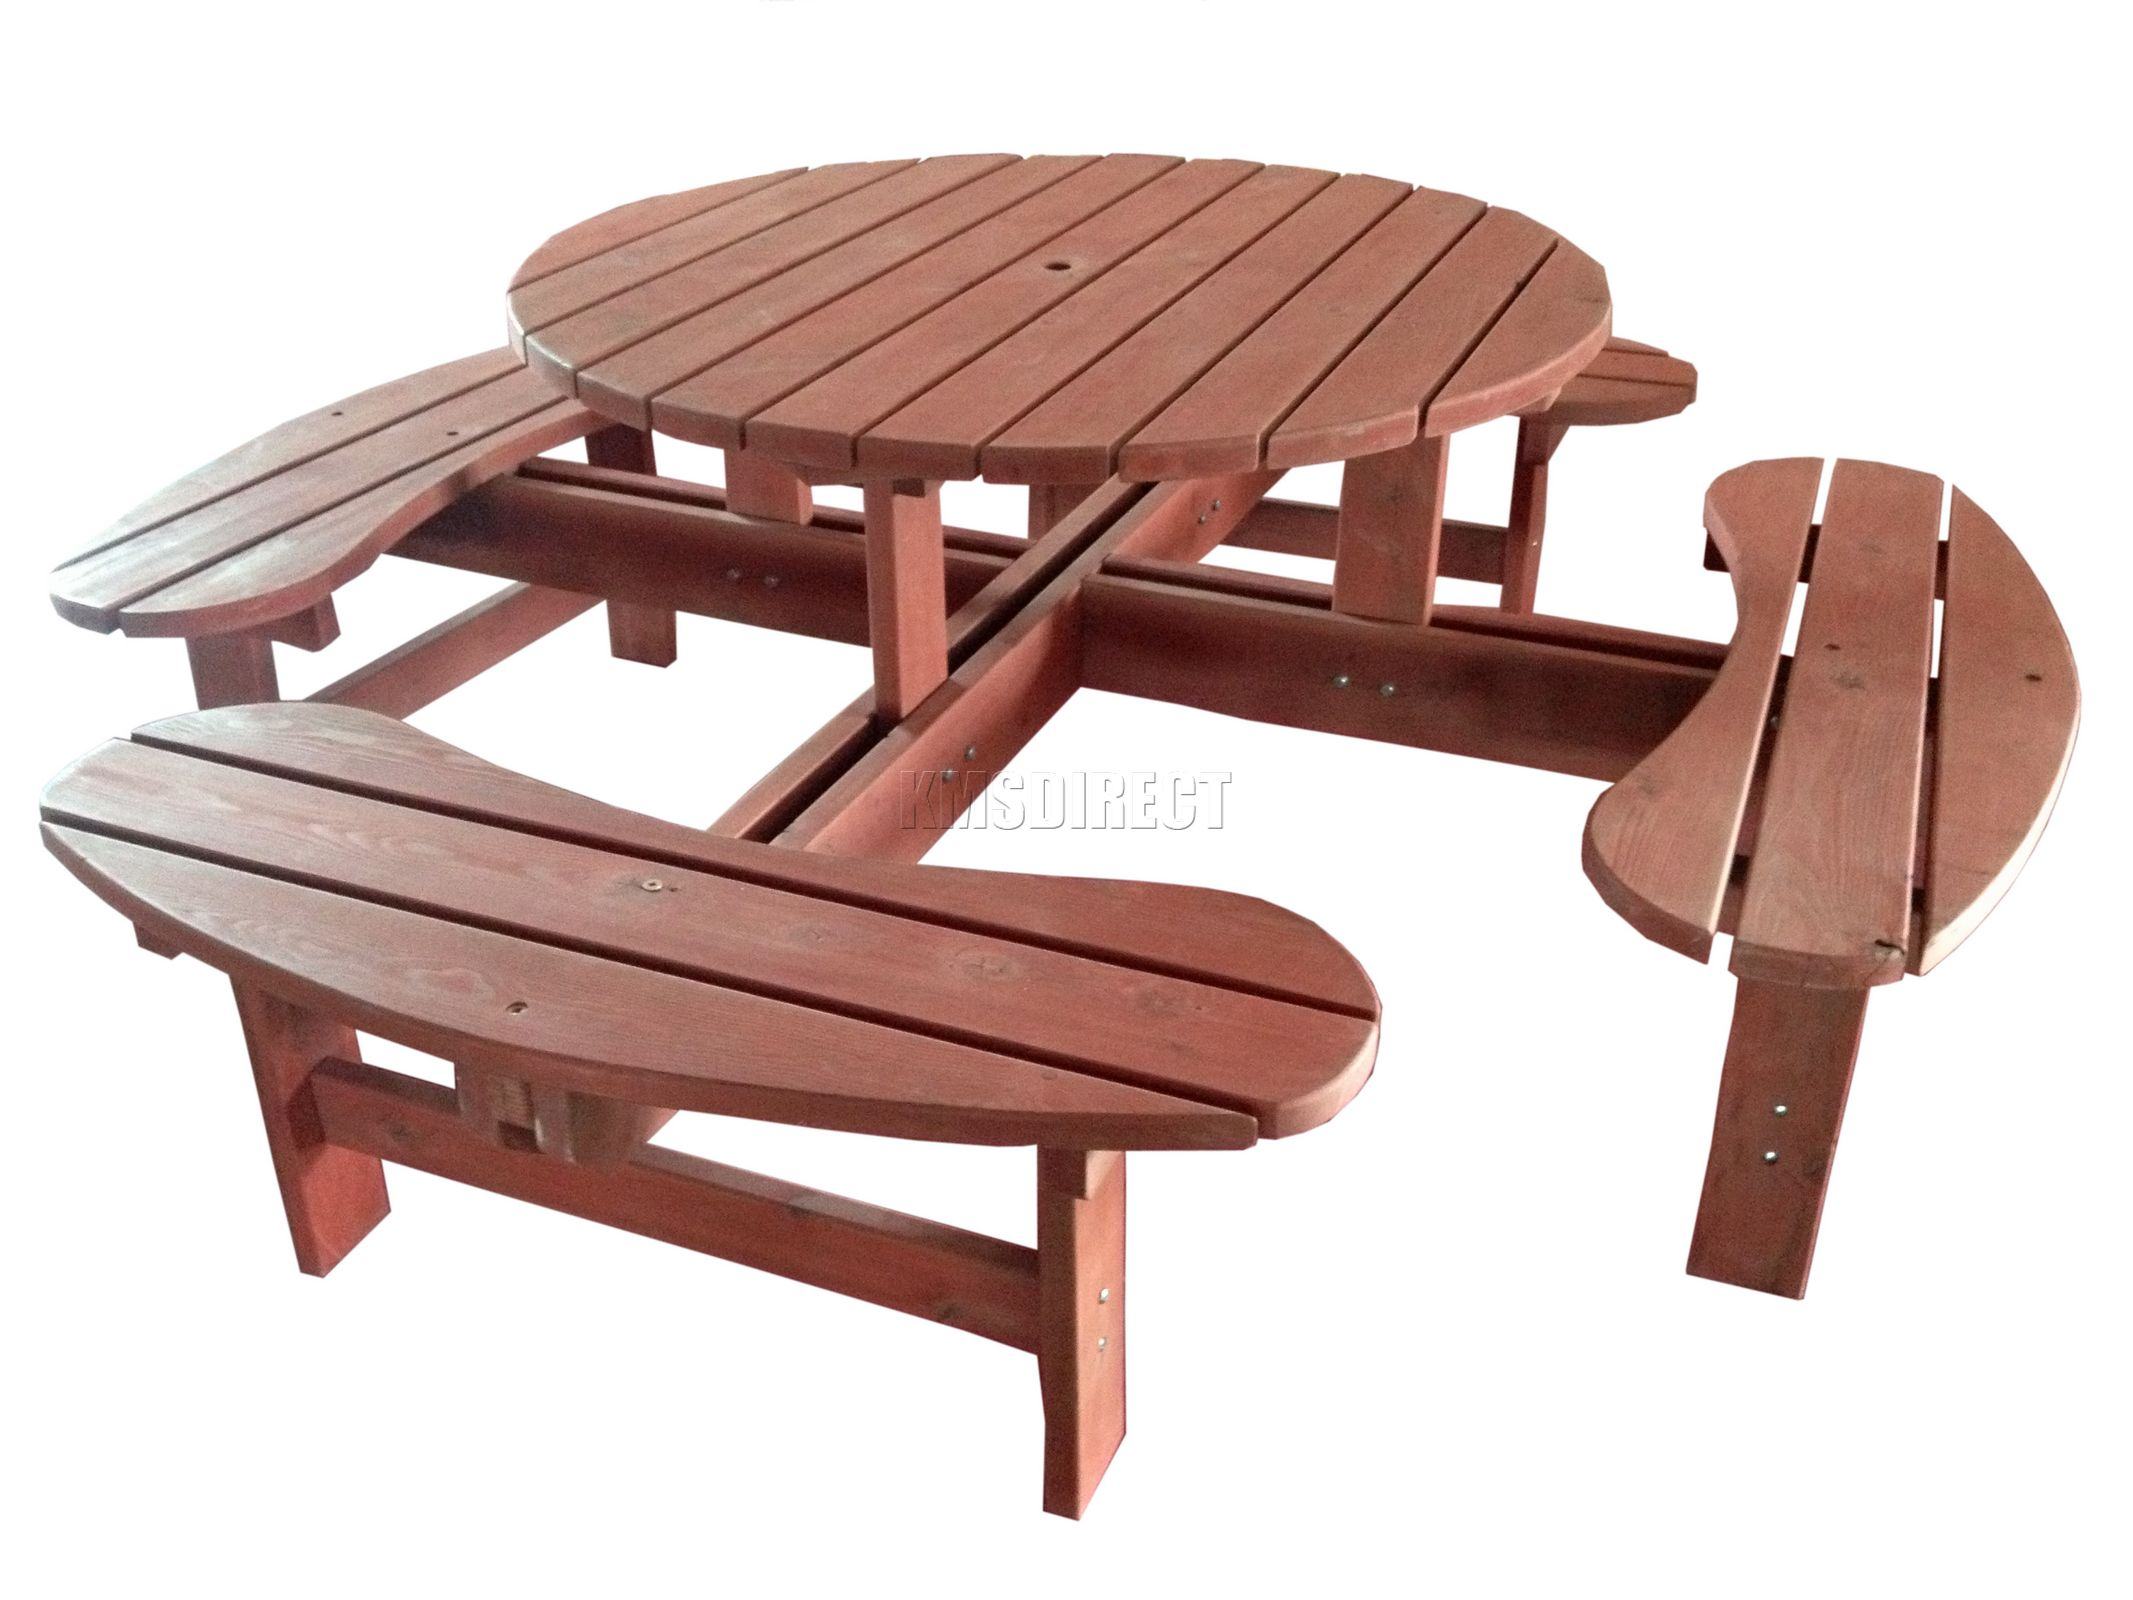 garden patio 8 seat seater wooden pub bench round picnic table furniture brown. Black Bedroom Furniture Sets. Home Design Ideas